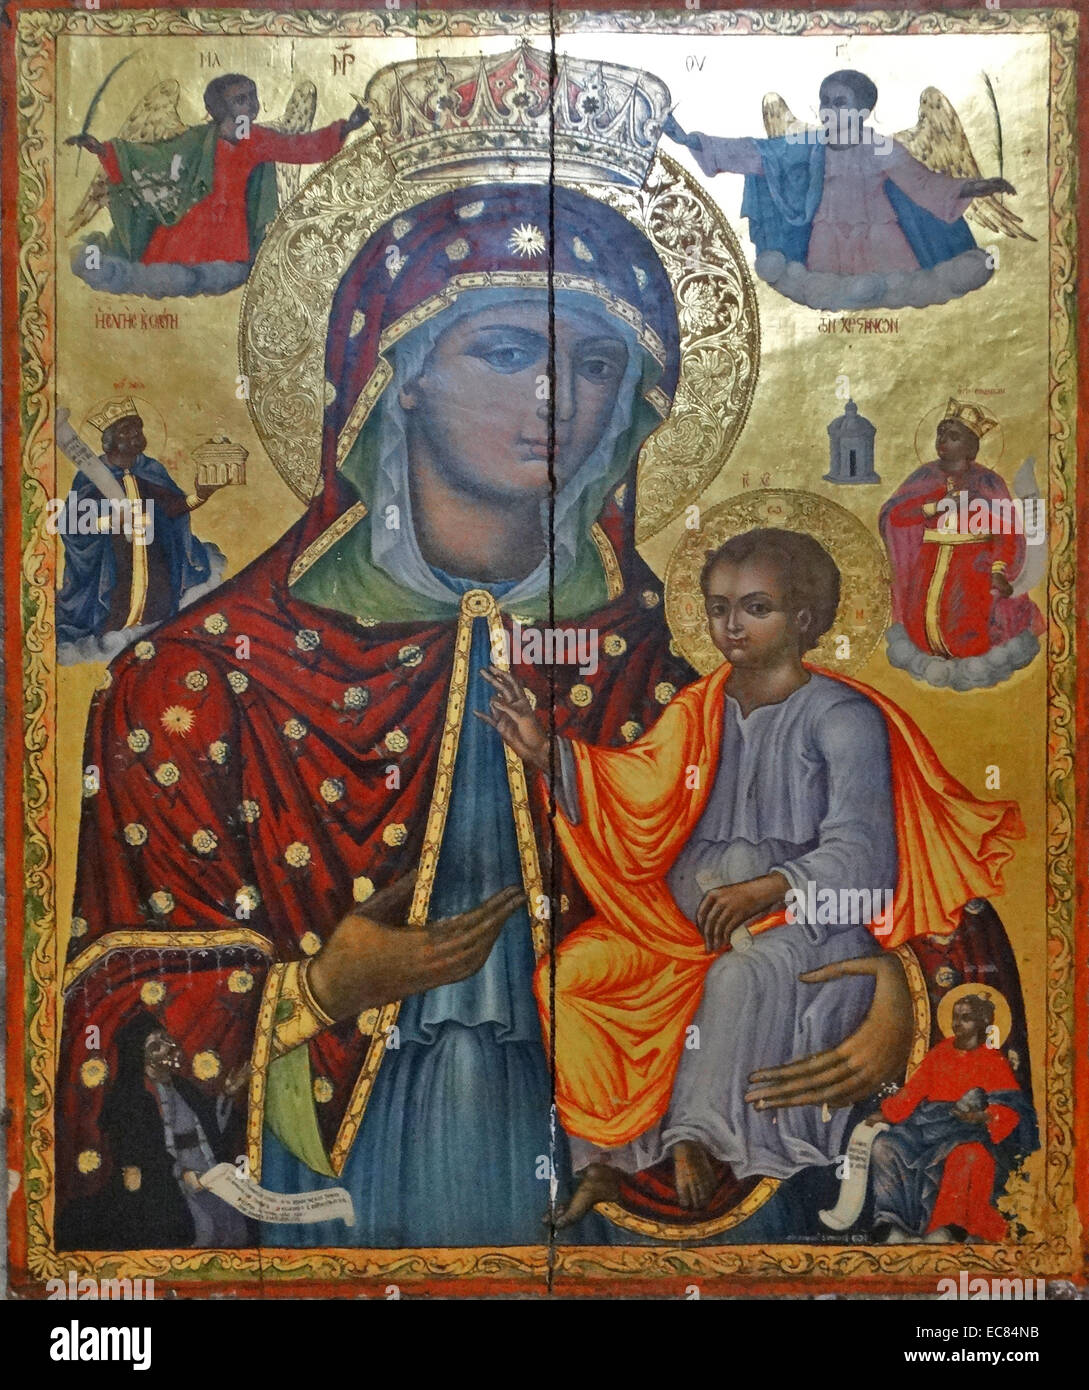 Greek Icon of Mary with Christ from the Church of the Holy Sepulchre. - Stock Image